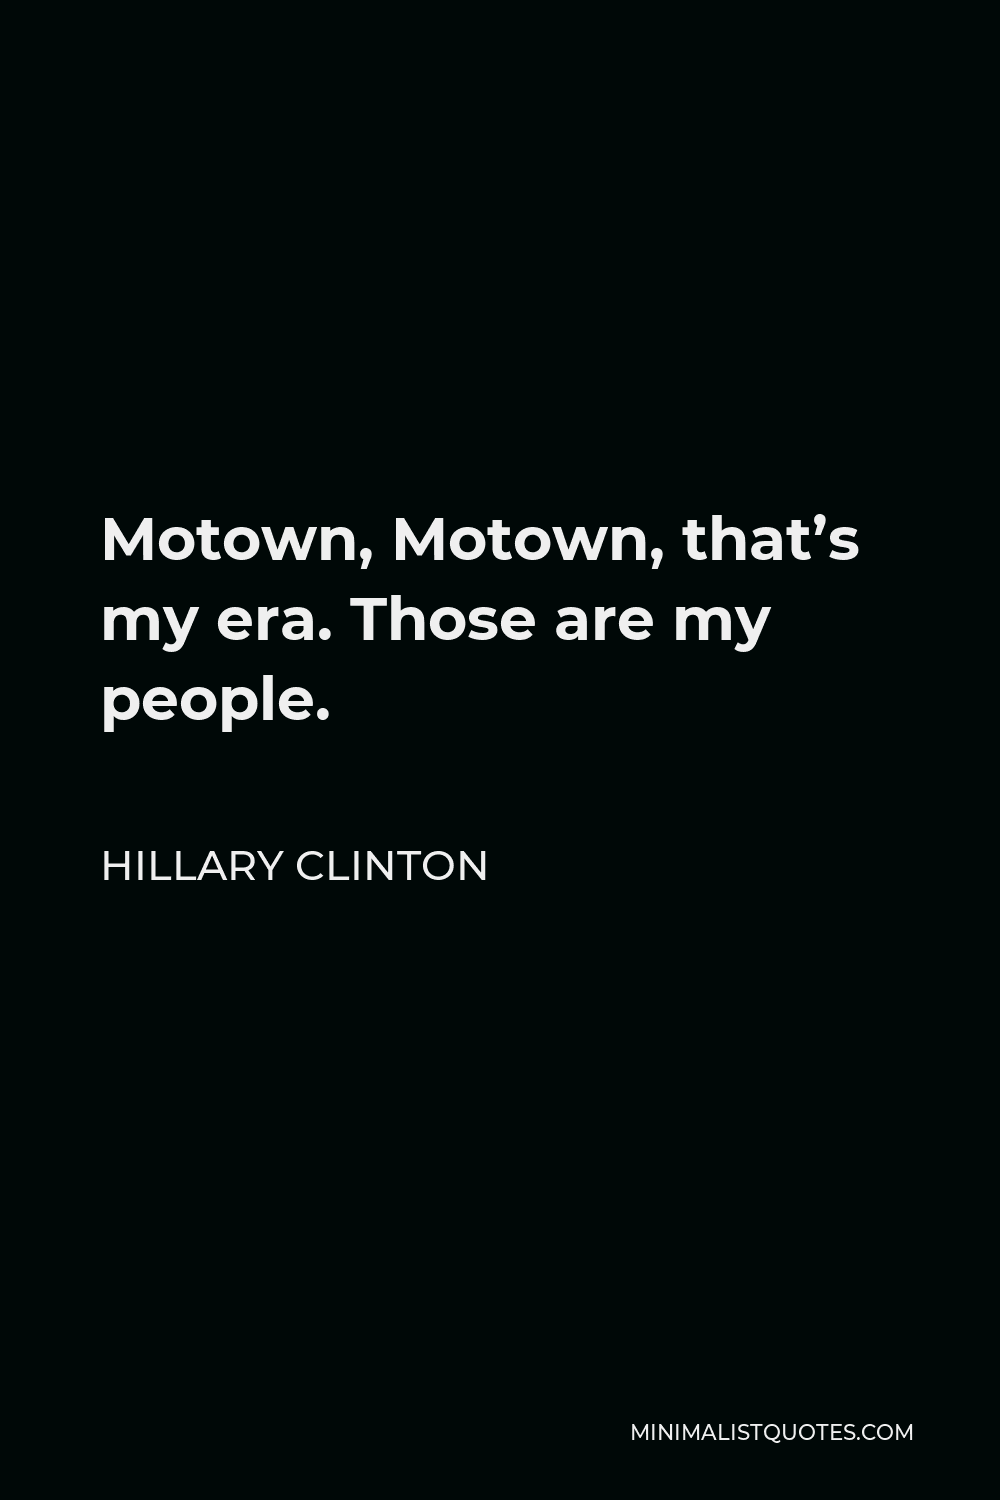 Hillary Clinton Quote - Motown, Motown, that's my era. Those are my people.